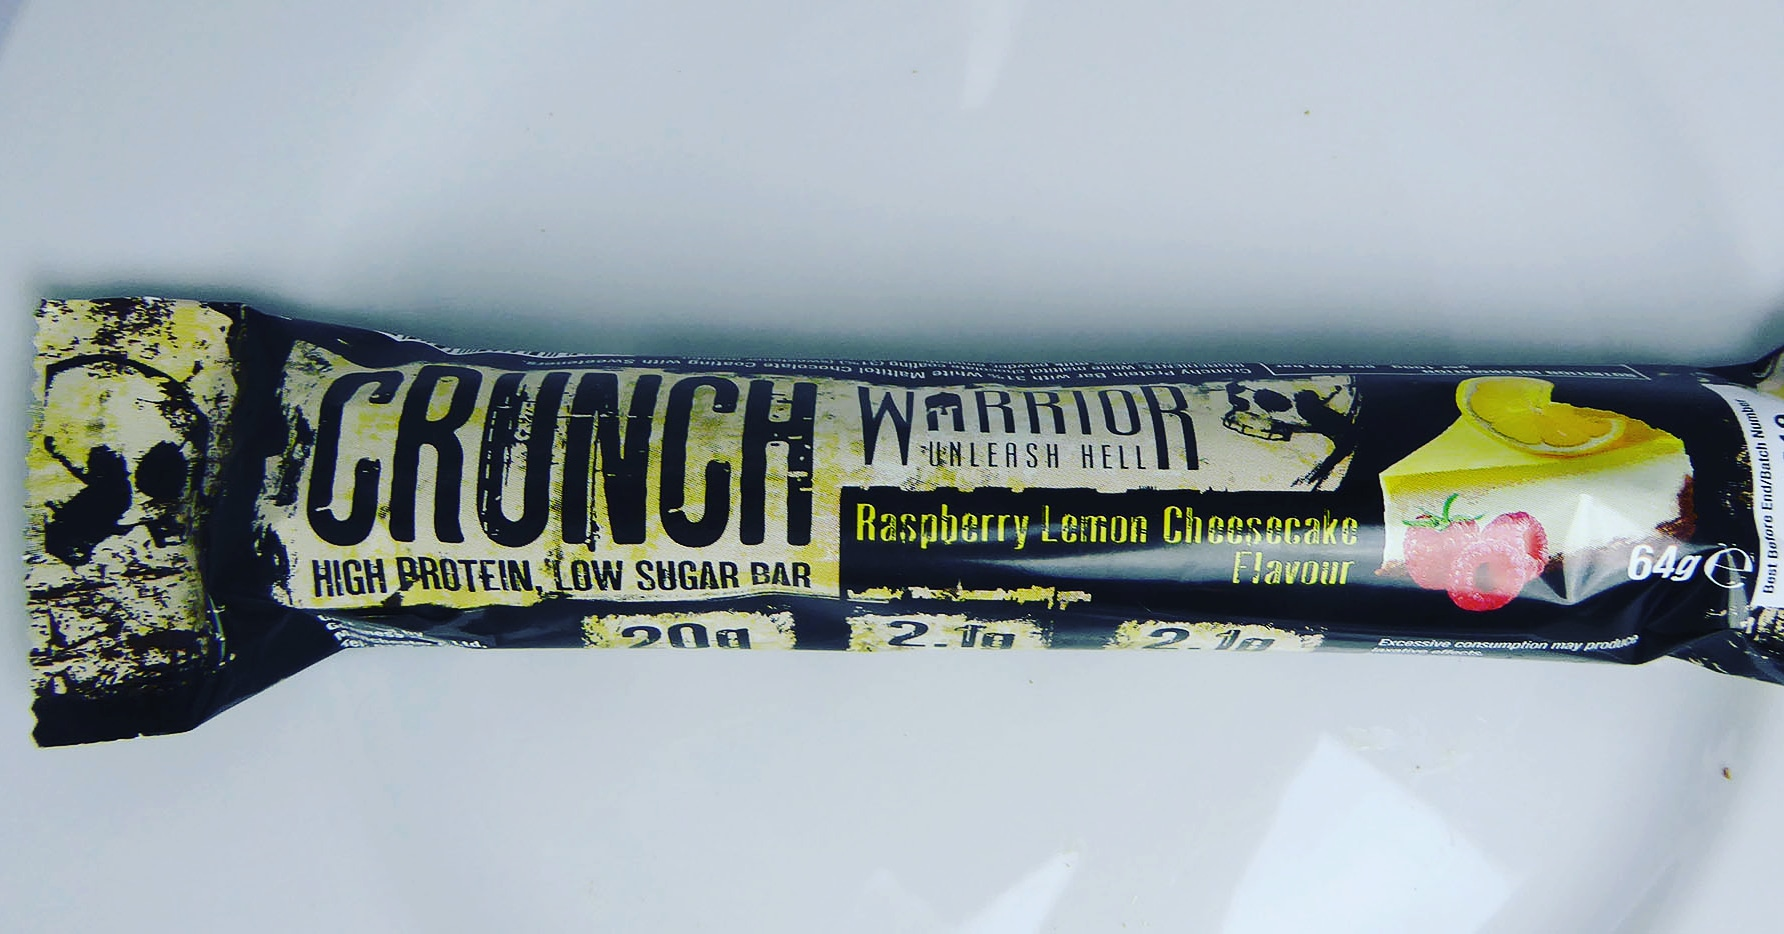 Crunch Warrior Raspberry Lemon Cheesecake Protein Bar Proteinbar Proteinriegel Eiweißriegel